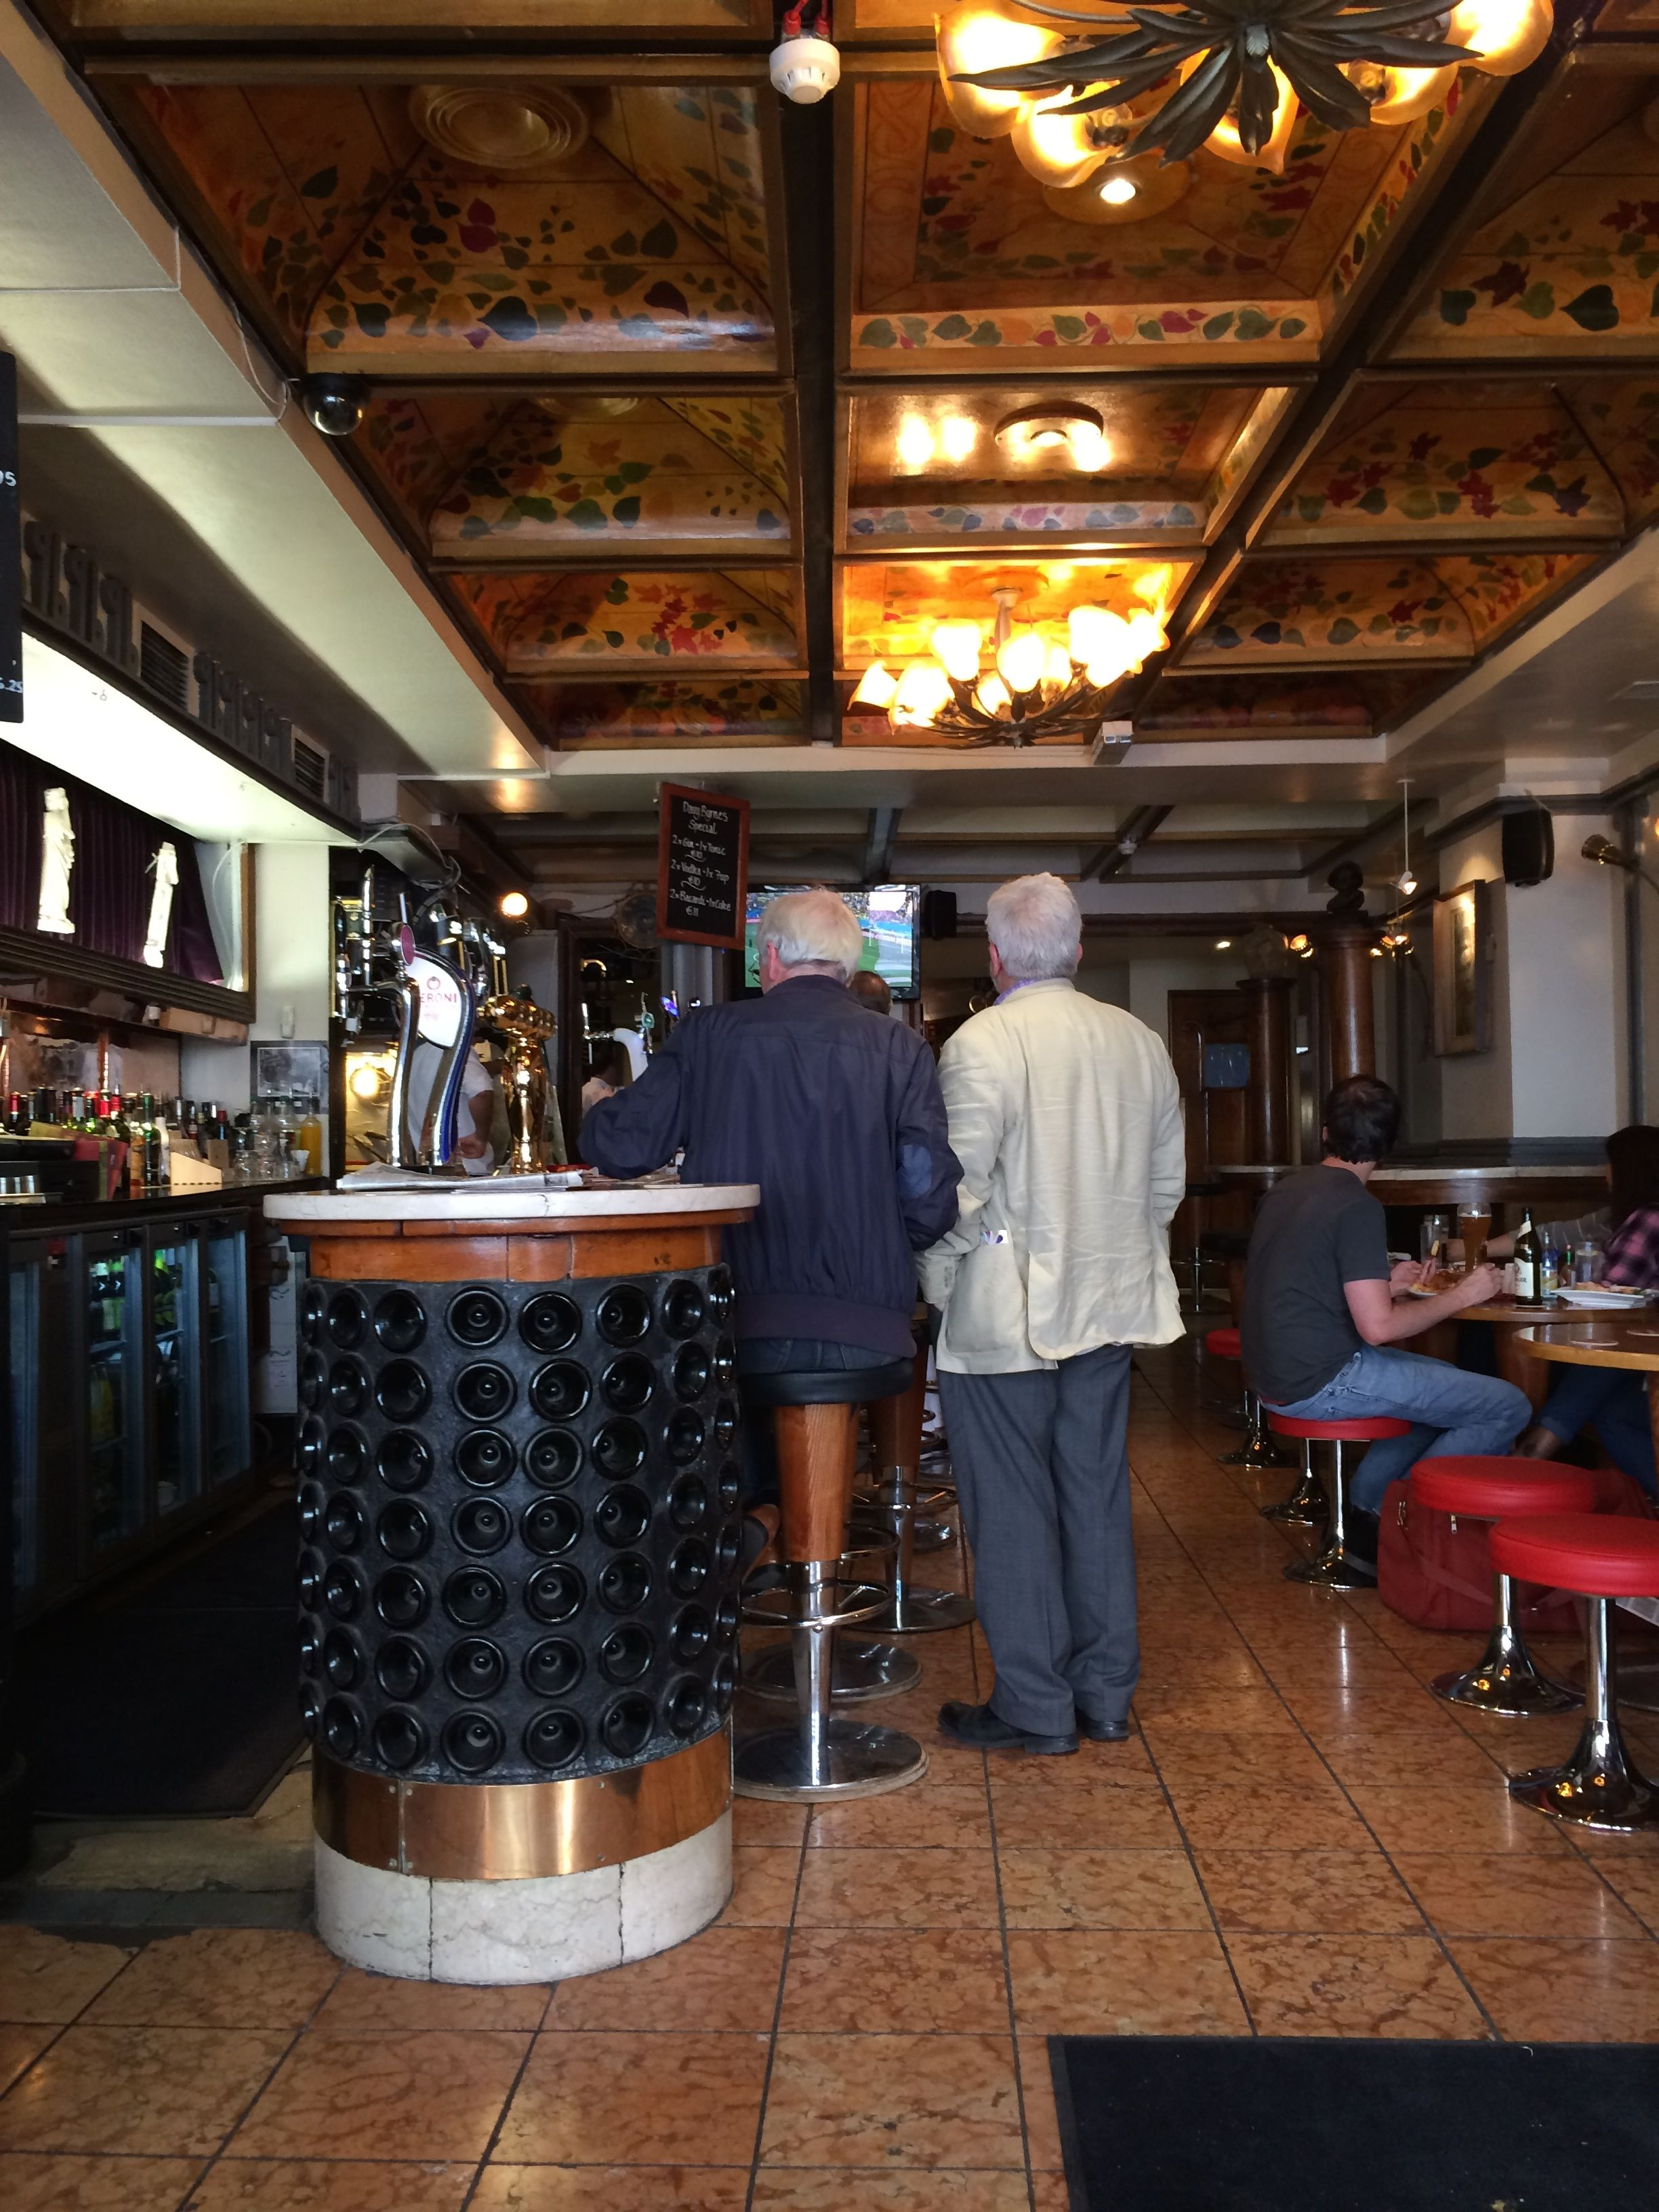 Interior of Davy Byrne's as photographed by the author, 30 June 2014.